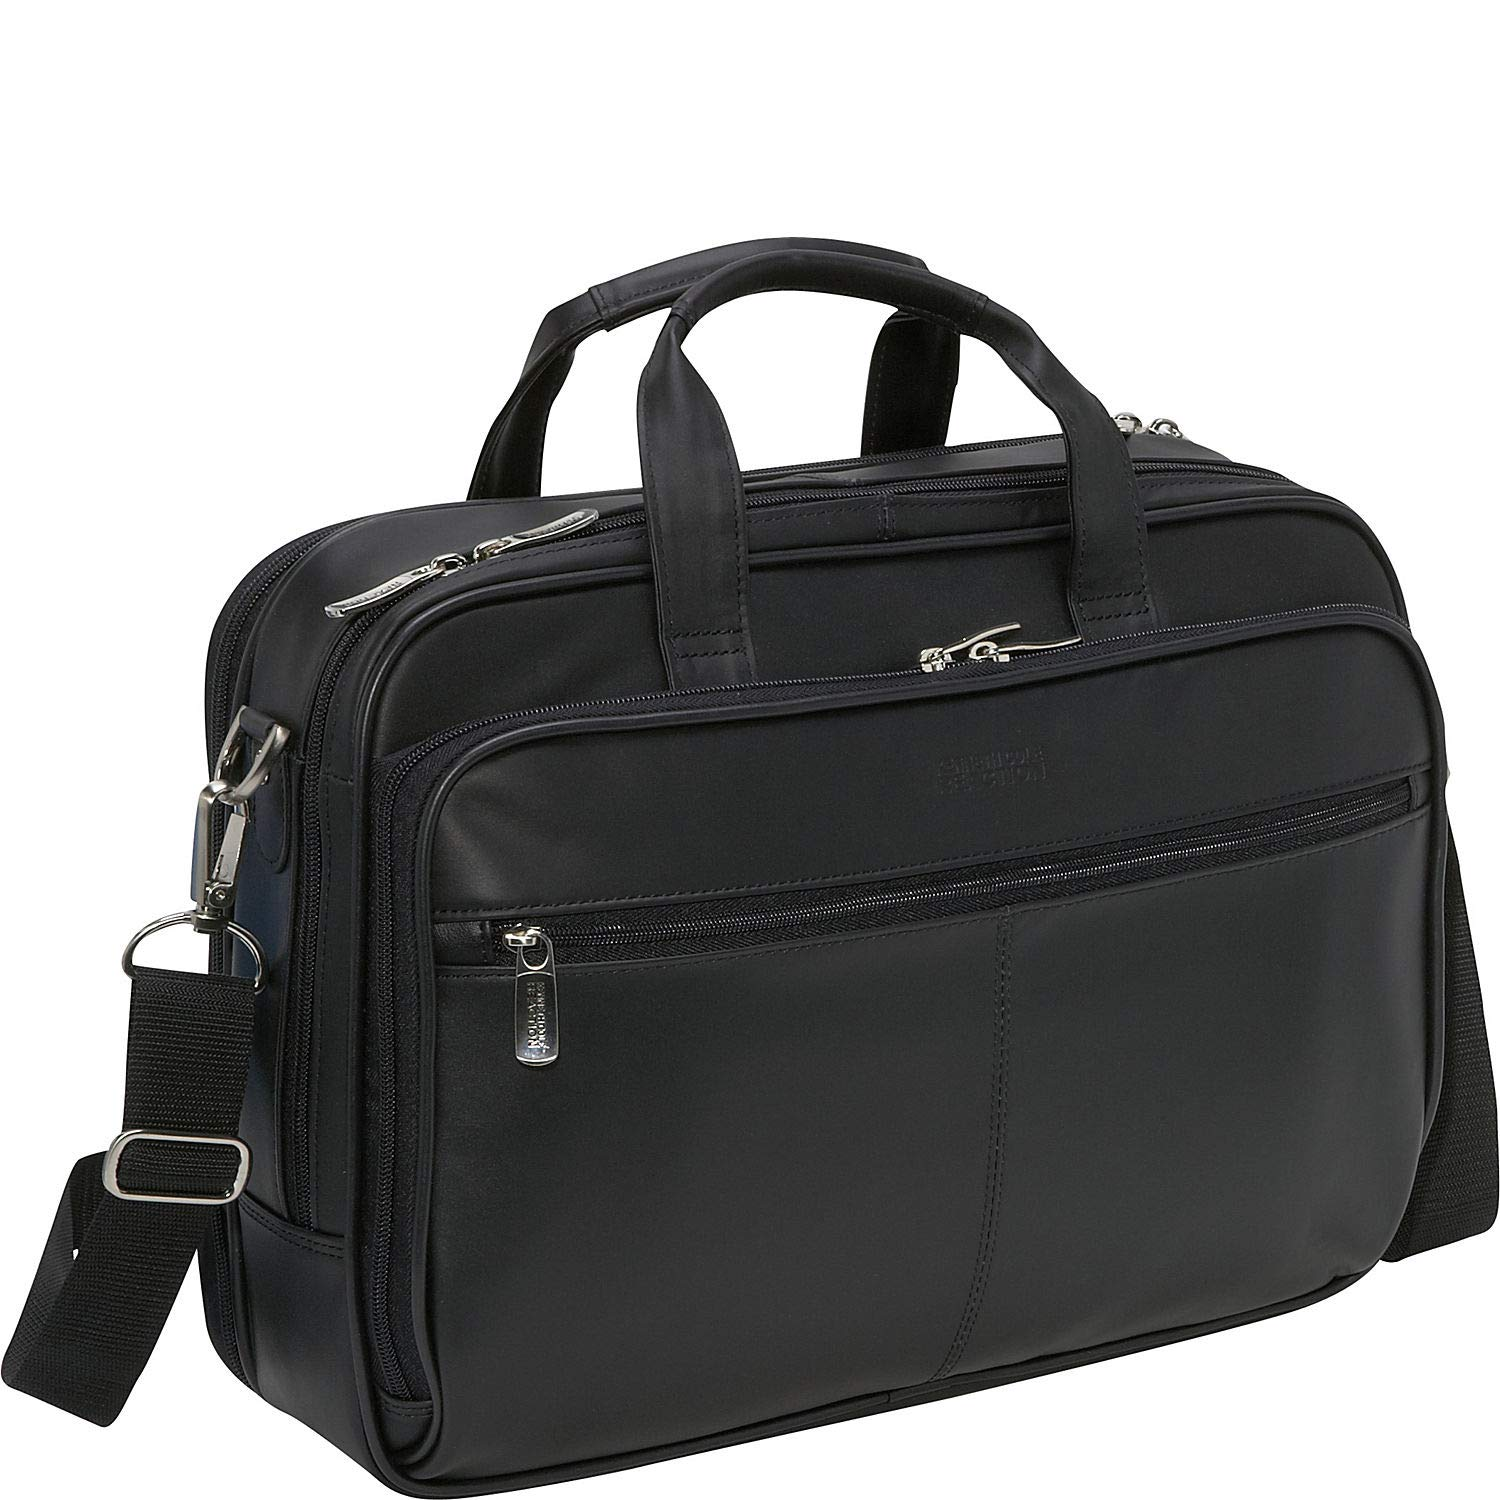 Kenneth Cole Reaction Genuine Leather Dual Compartment 15.4 Laptop Portfolio, Black Heritage-Kenneth Cole Luggage 524965